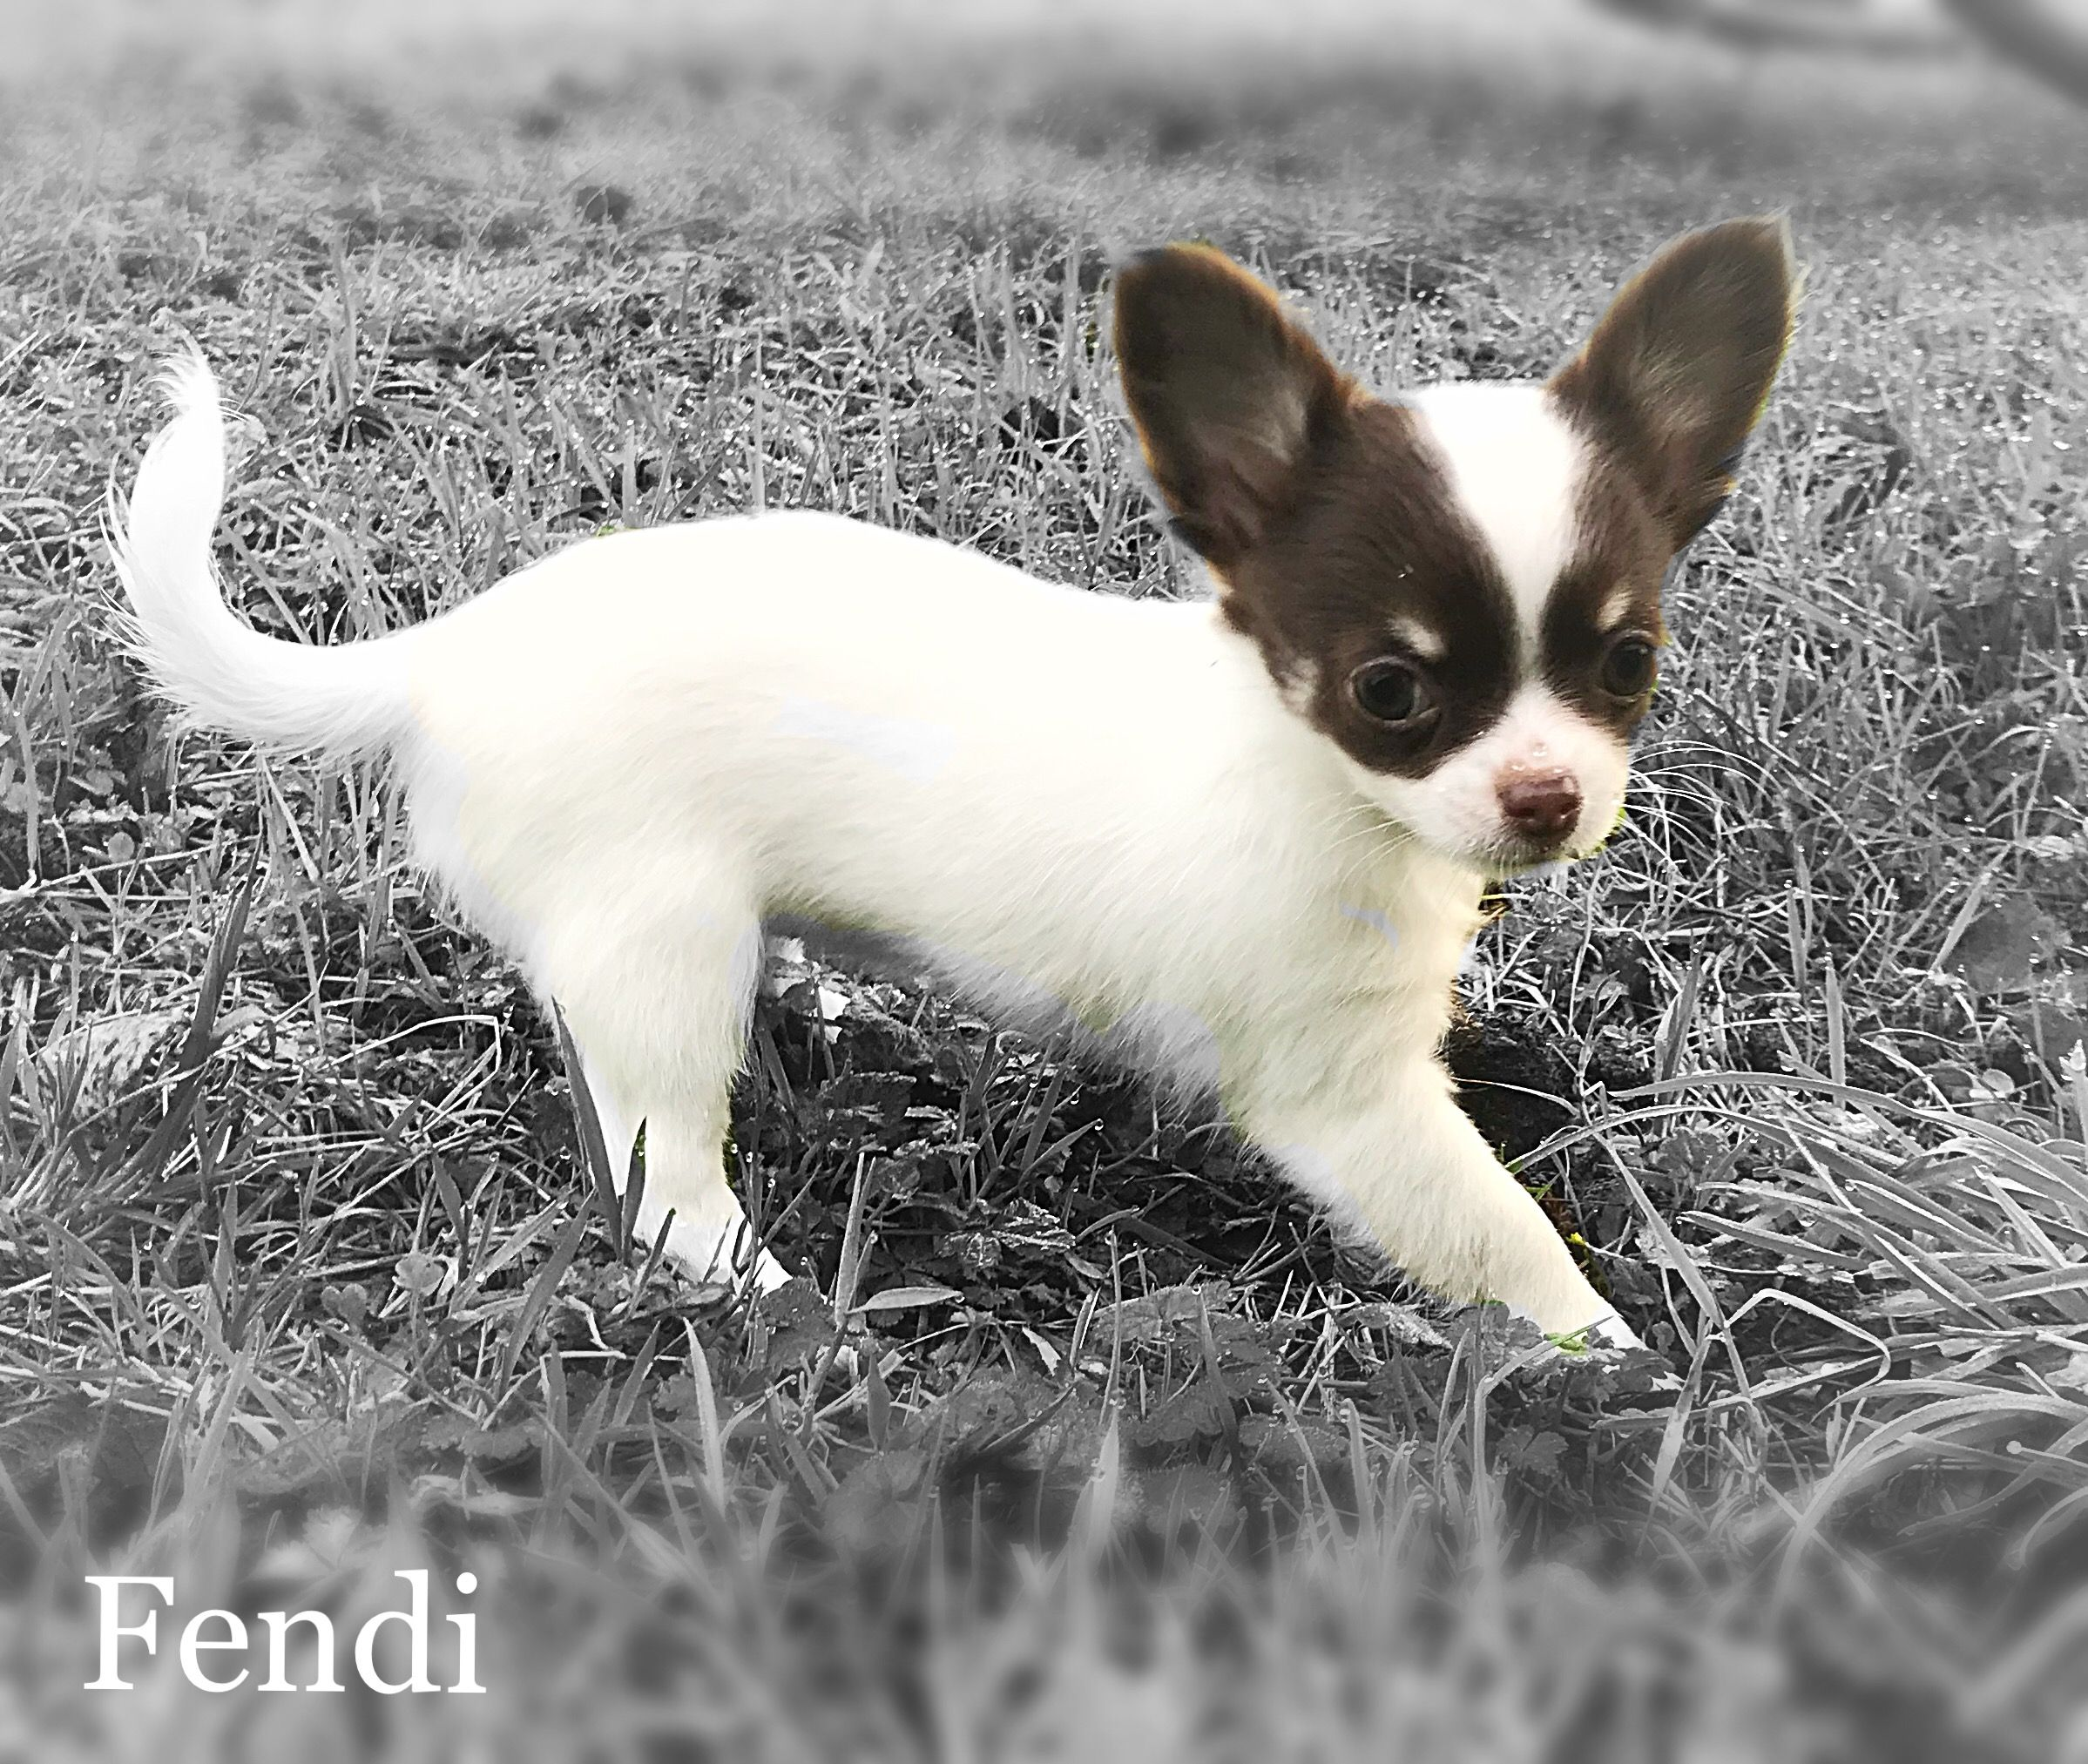 Pin By Shara Barr On Awww Chihuahua Puppies Chihuahua Dogs